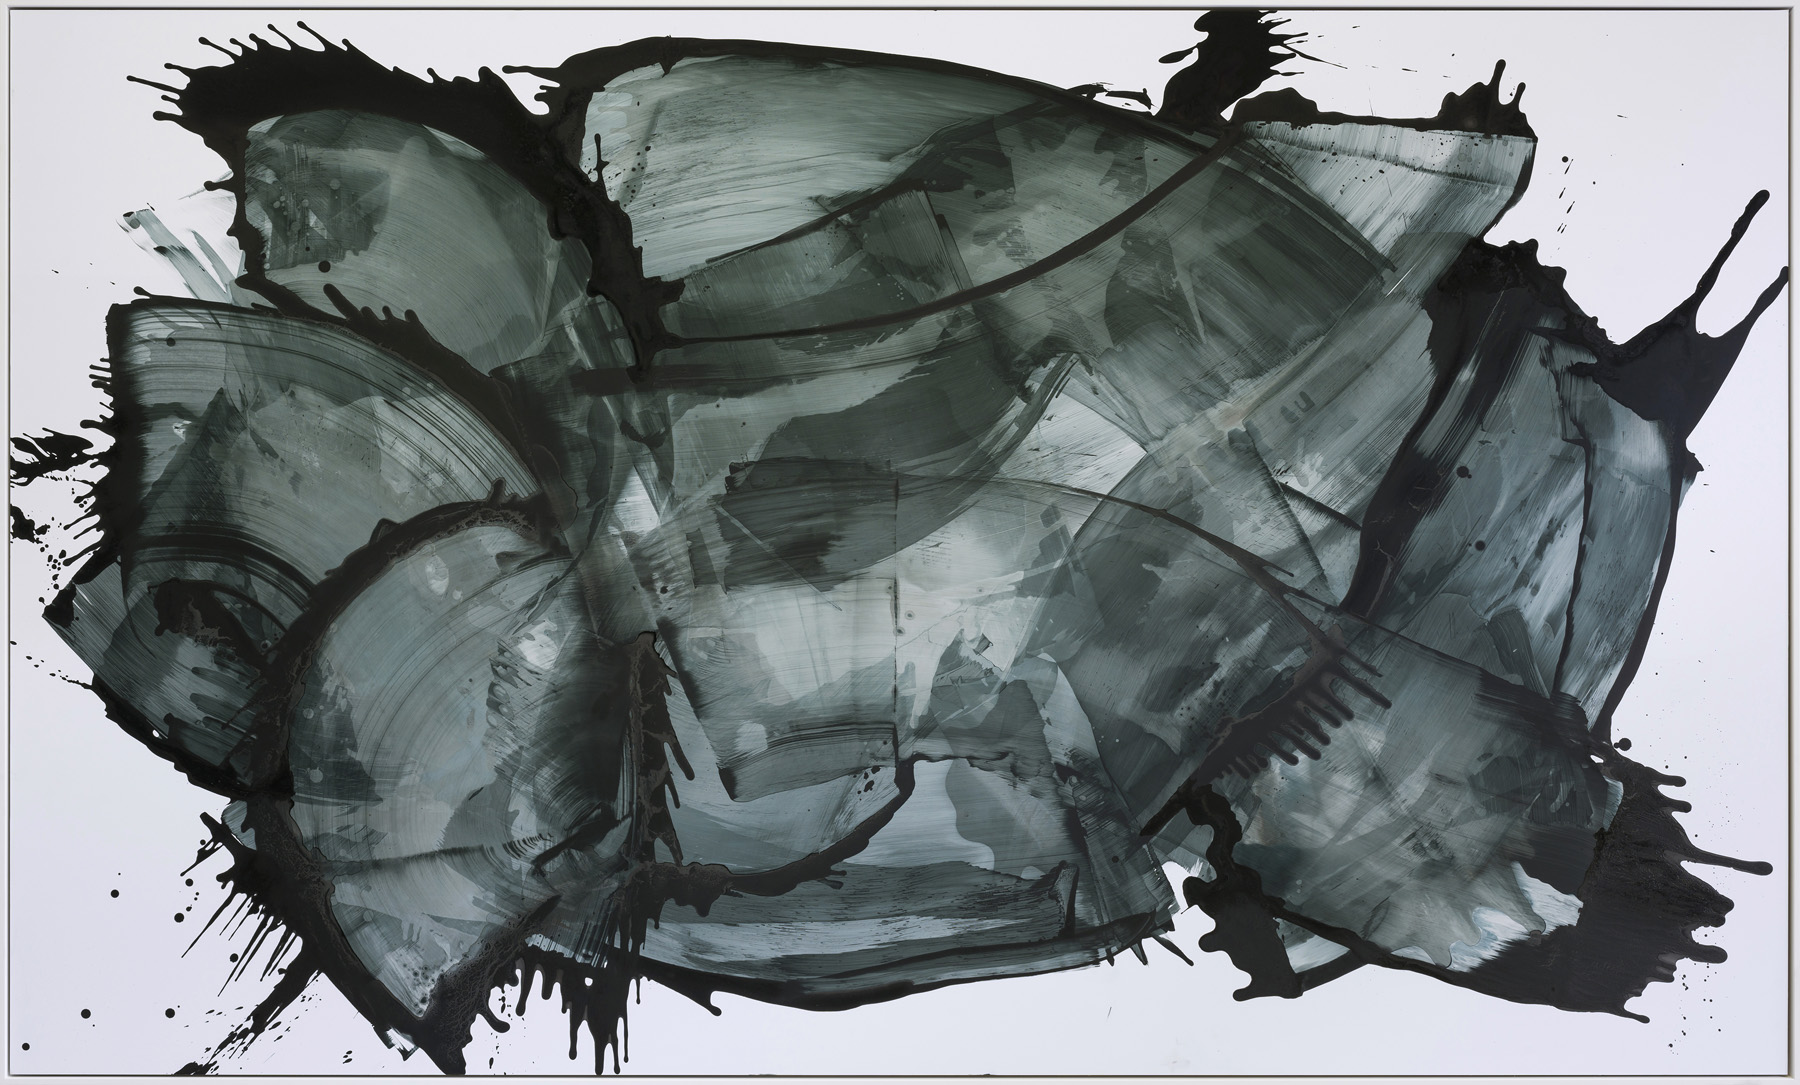 Europa , 2018  Acrylic and Indian Ink on Paper  250 x 155 cm